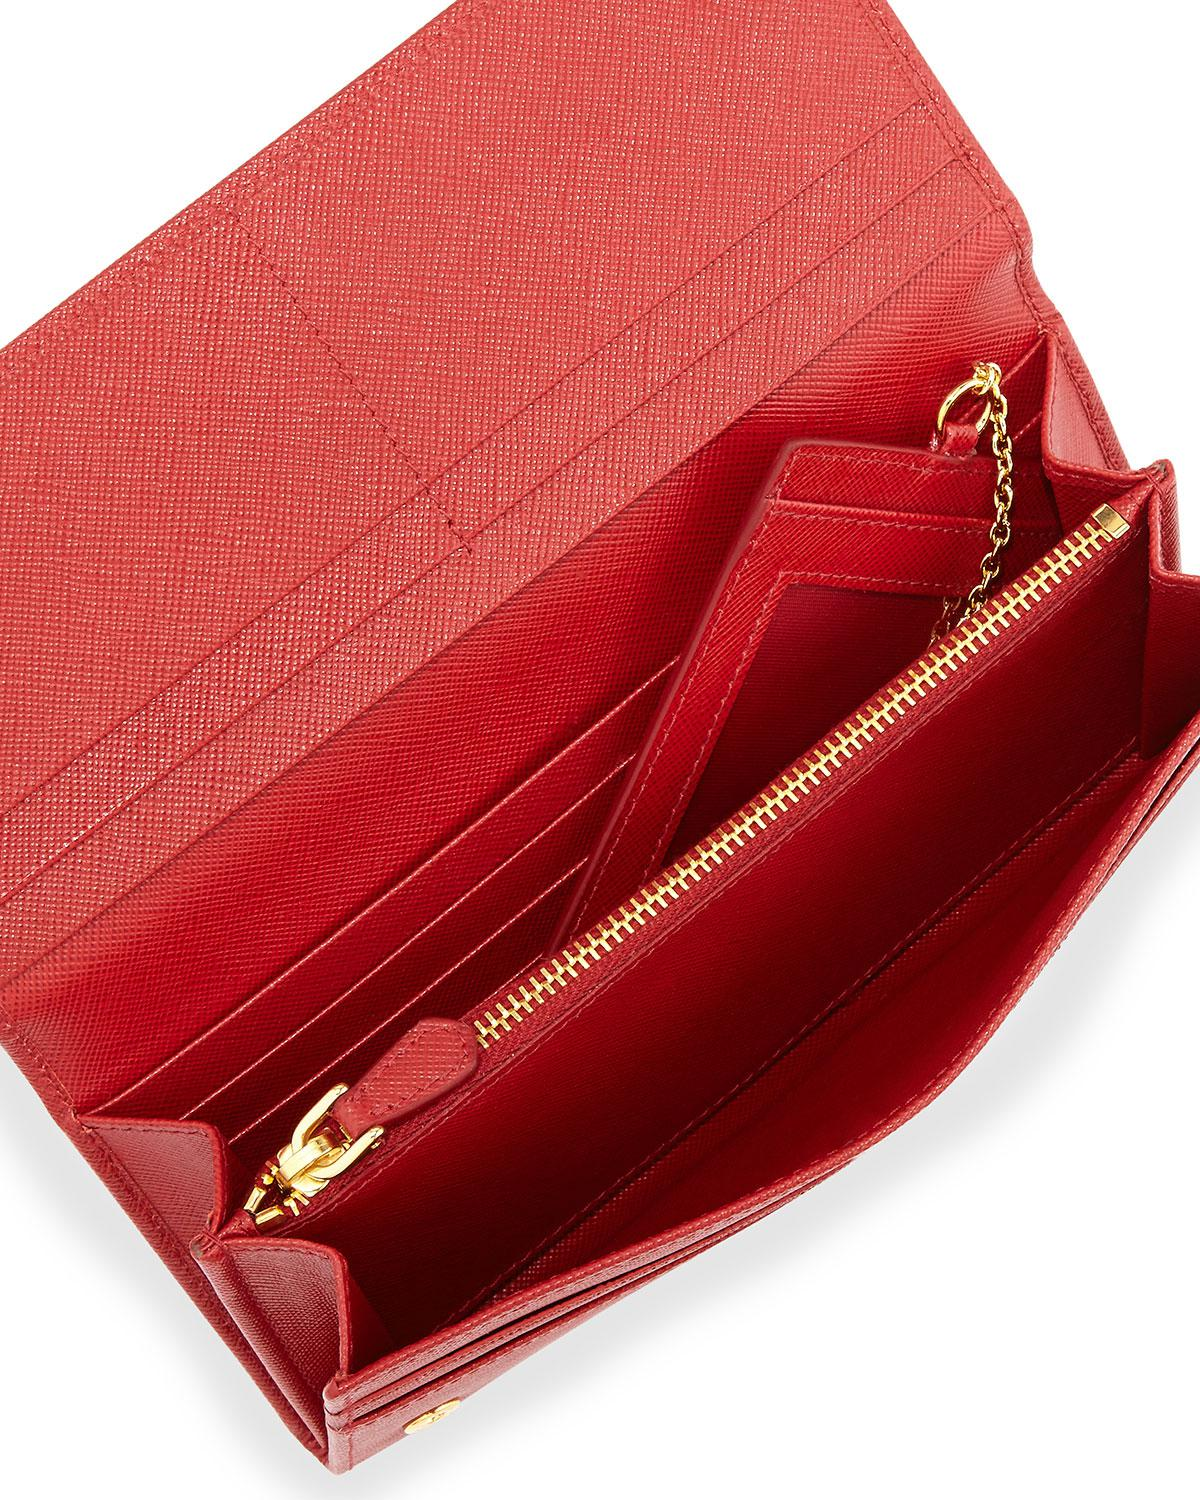 0d4455e2cd2a ... switzerland lyst prada saffiano continental flap wallet in red save  10.13698630136986 181ae 043b1